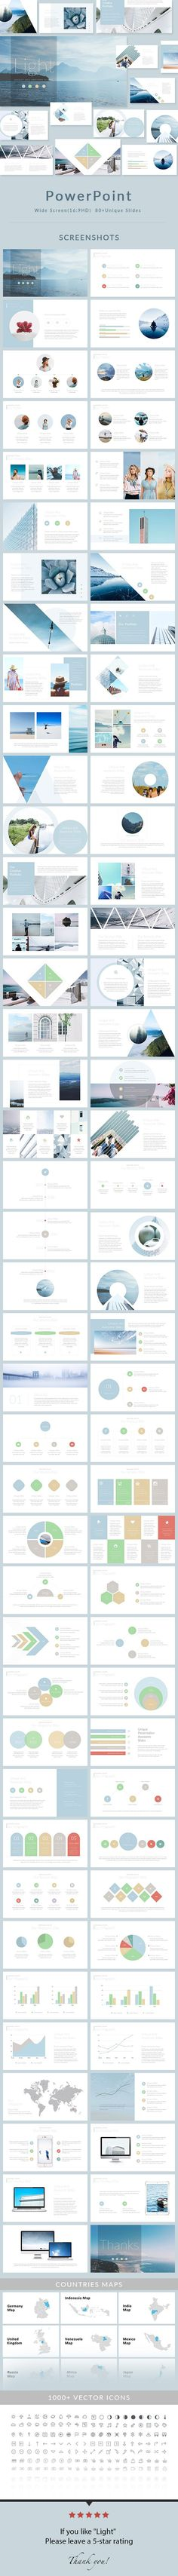 Light - PowerPoint Presentation Template - Business PowerPoint Templates